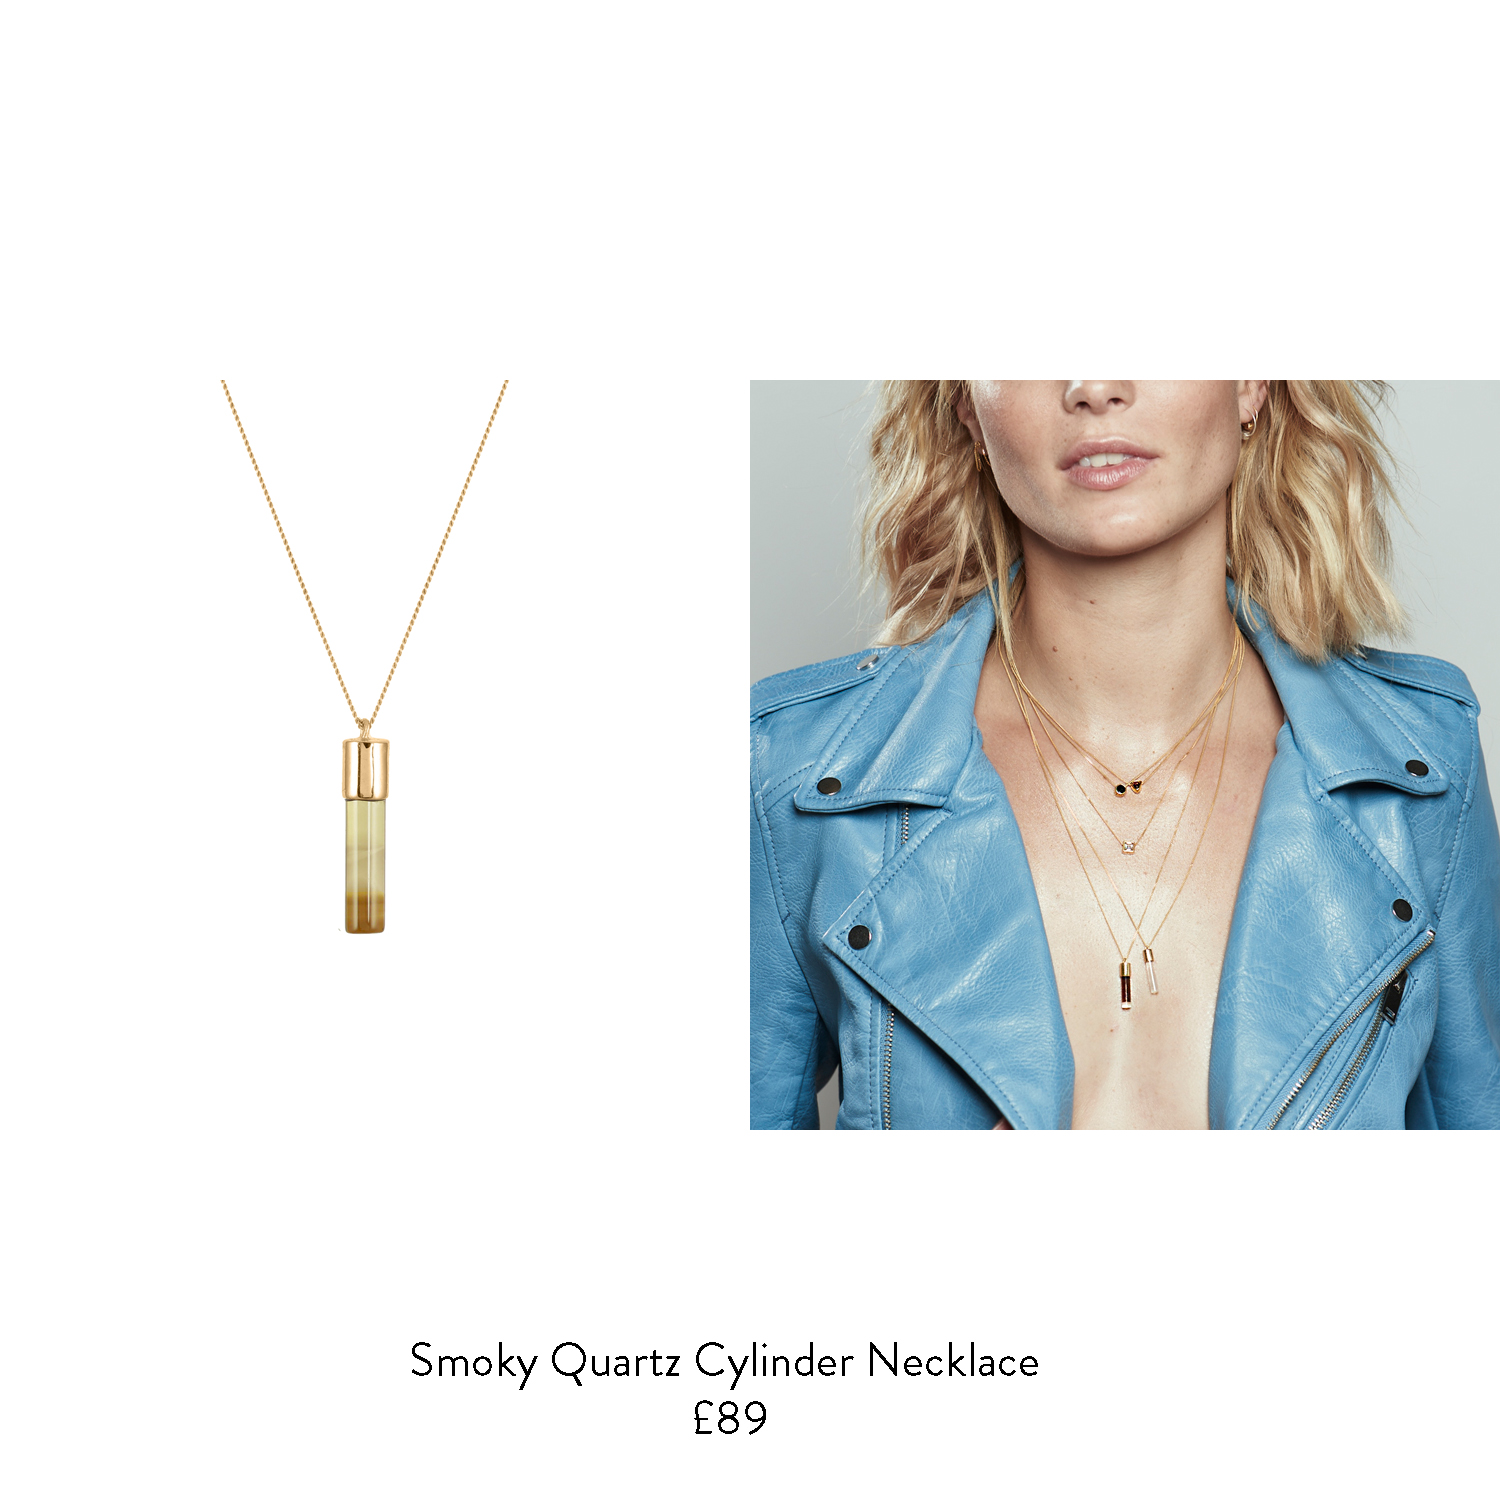 50th birthday gift ideas for her smoky quartz gold necklace